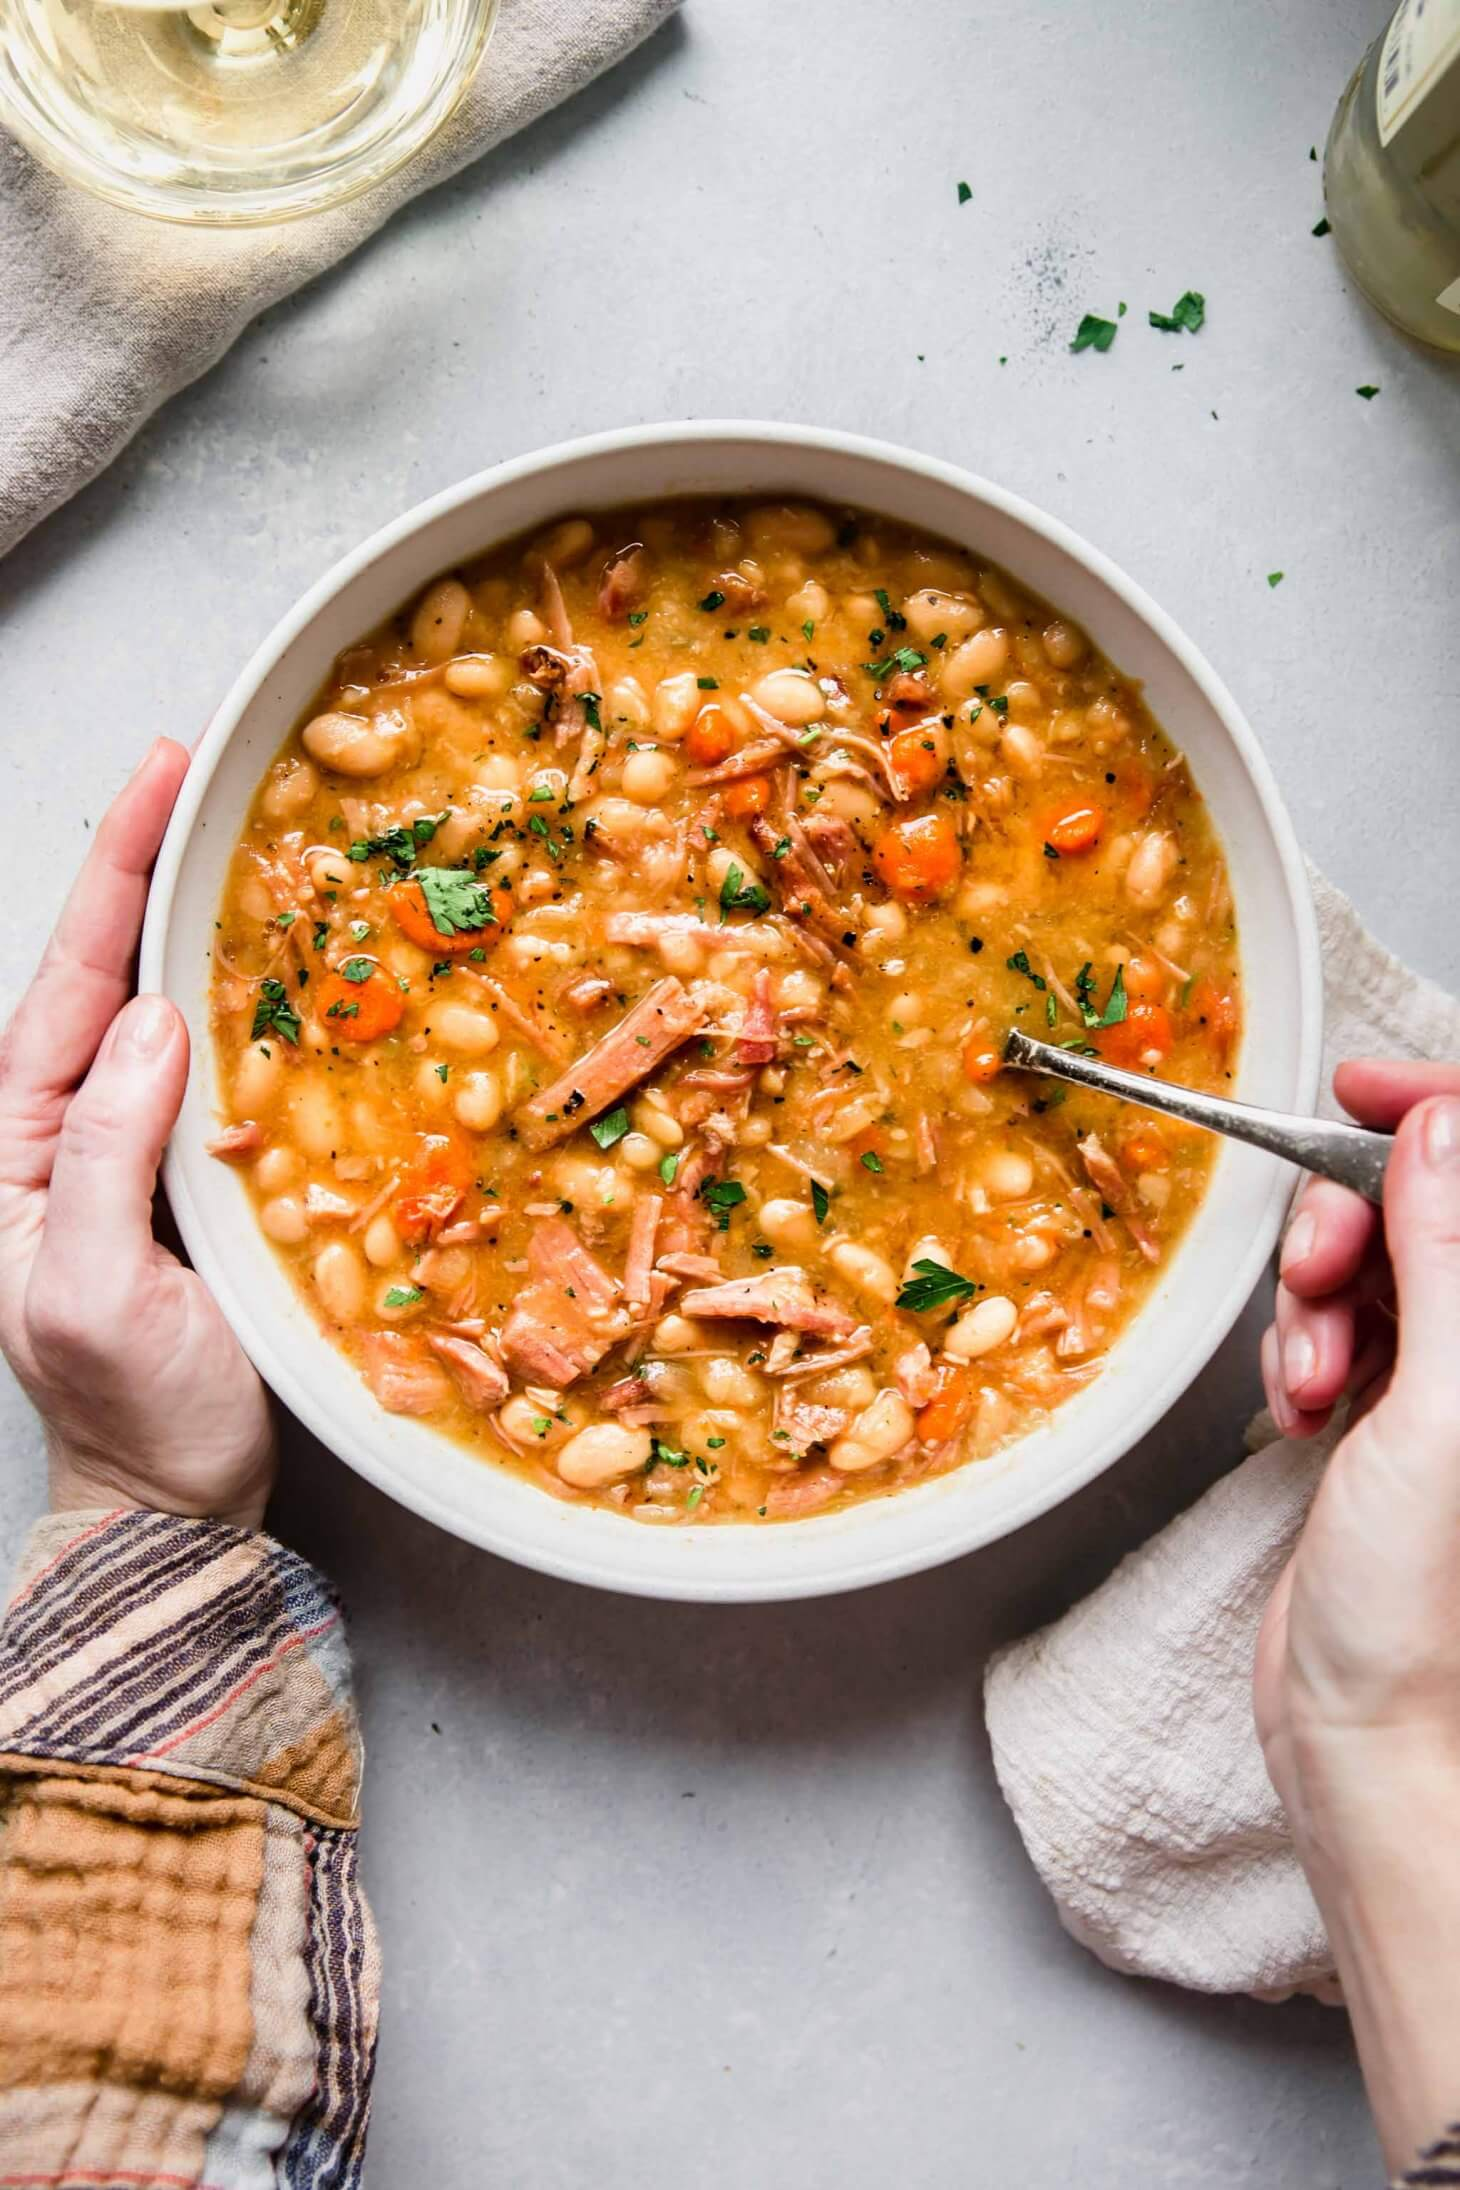 Bowl of Slow Cooker Ham and Bean Soup with hands holding bowl and spoon